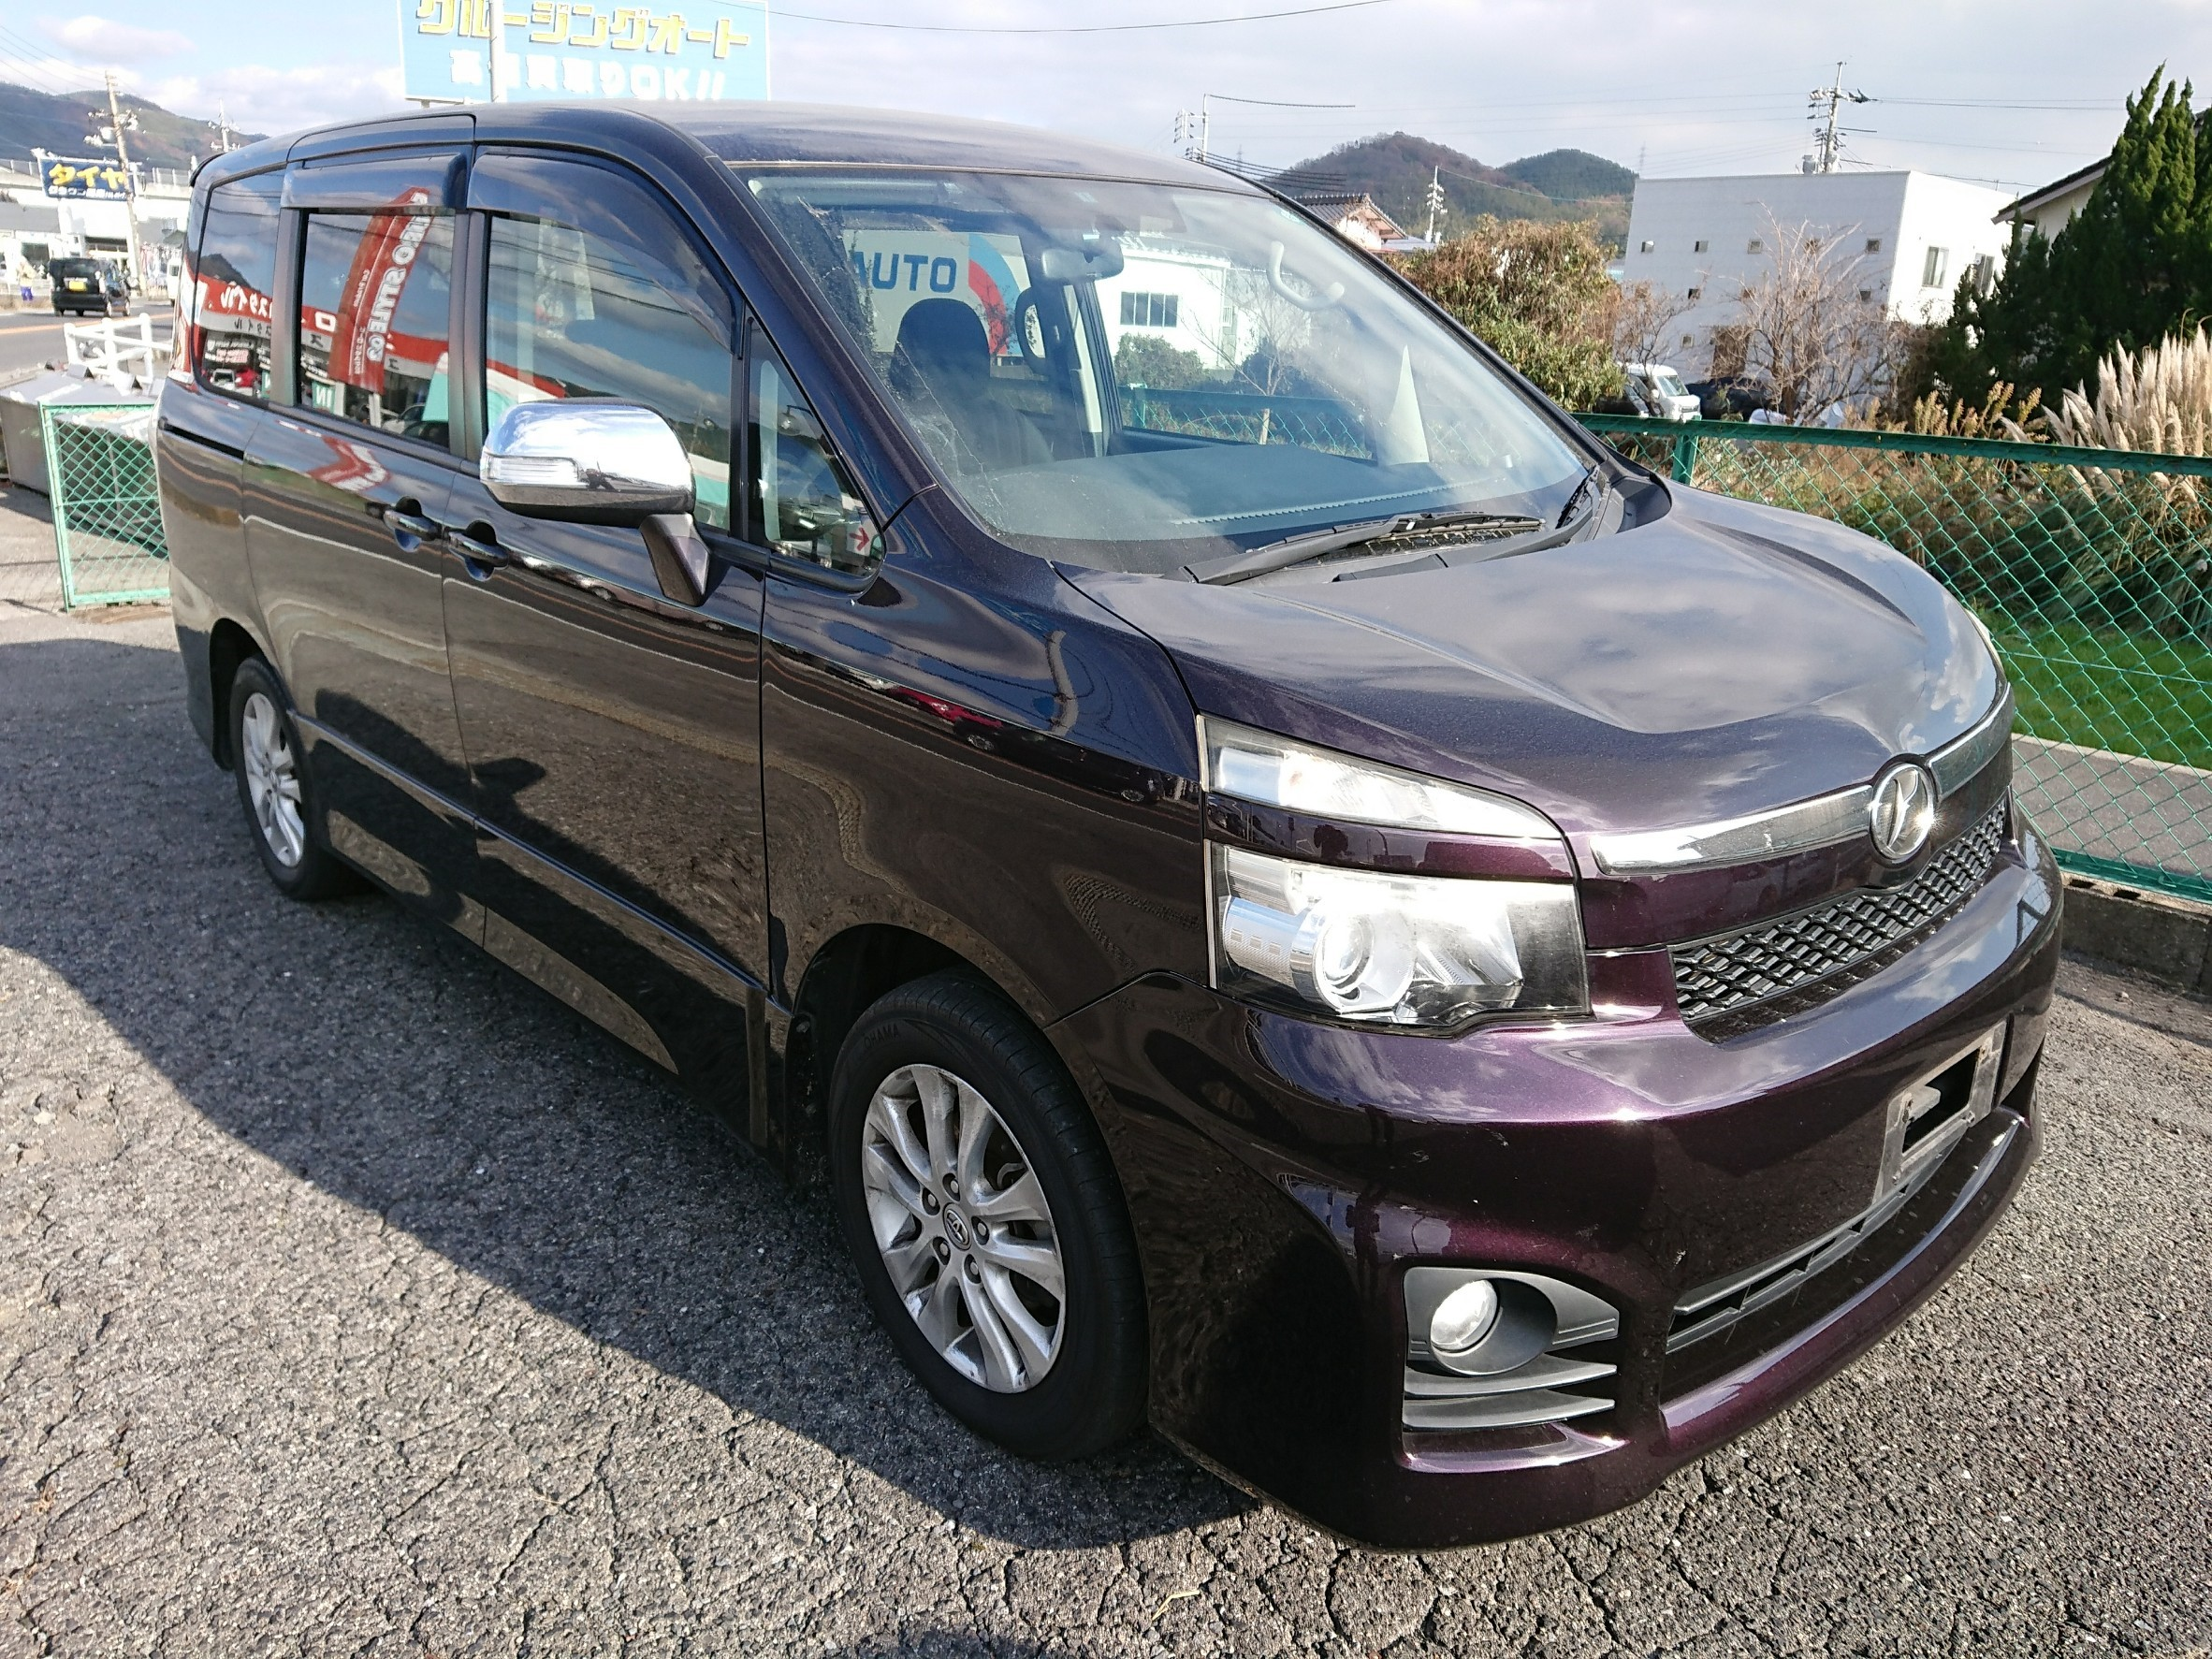 Image Of Used Car Japan Sbt High Quality Japanese Used Cars For Sale